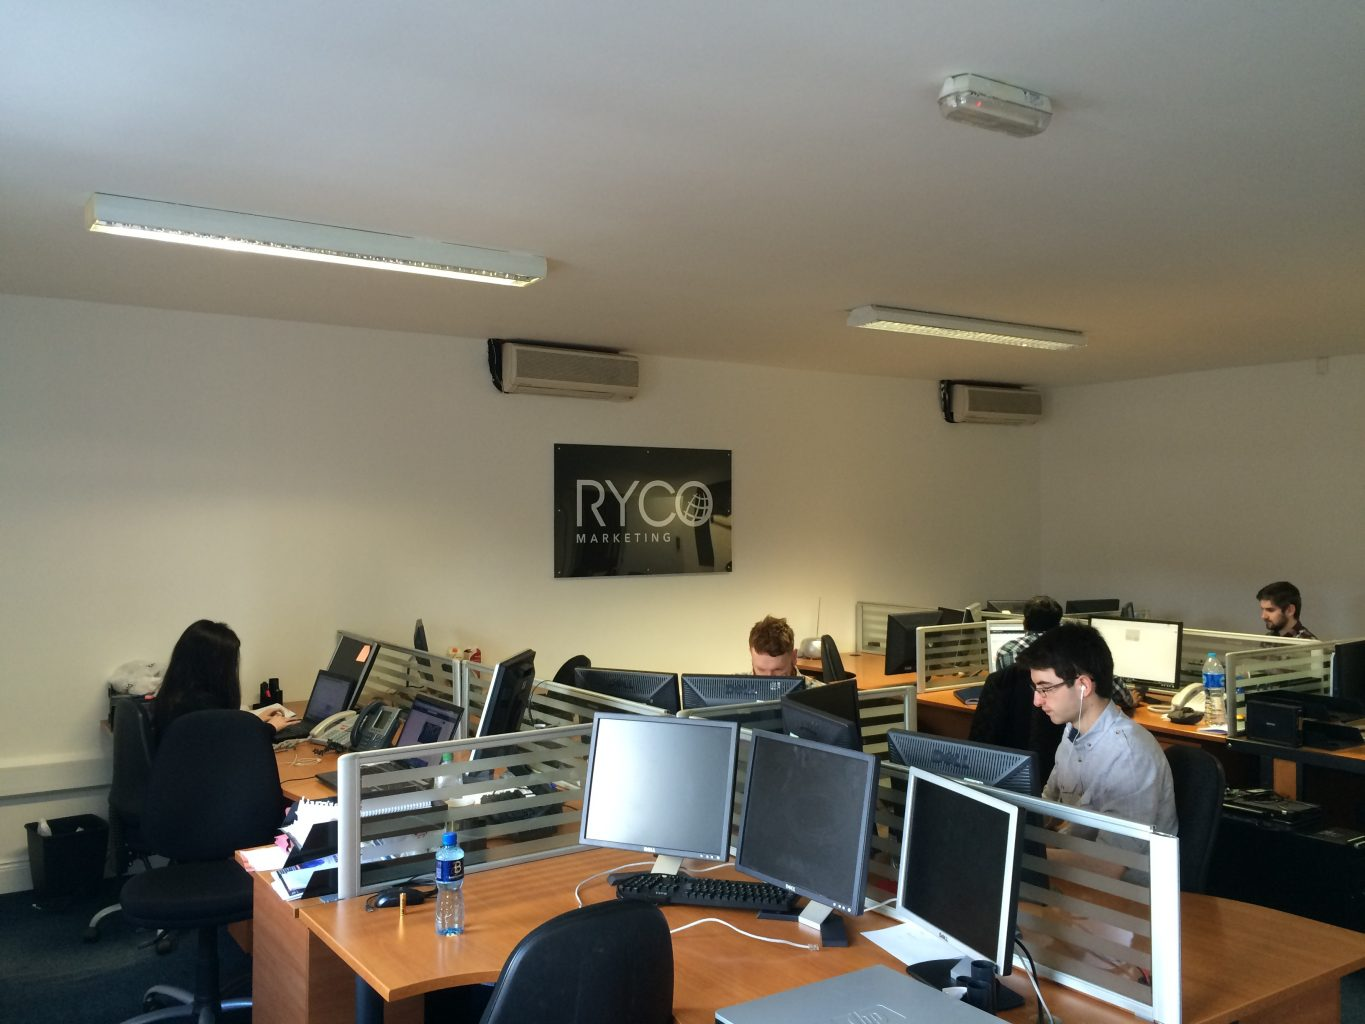 Ryco Marketing Office